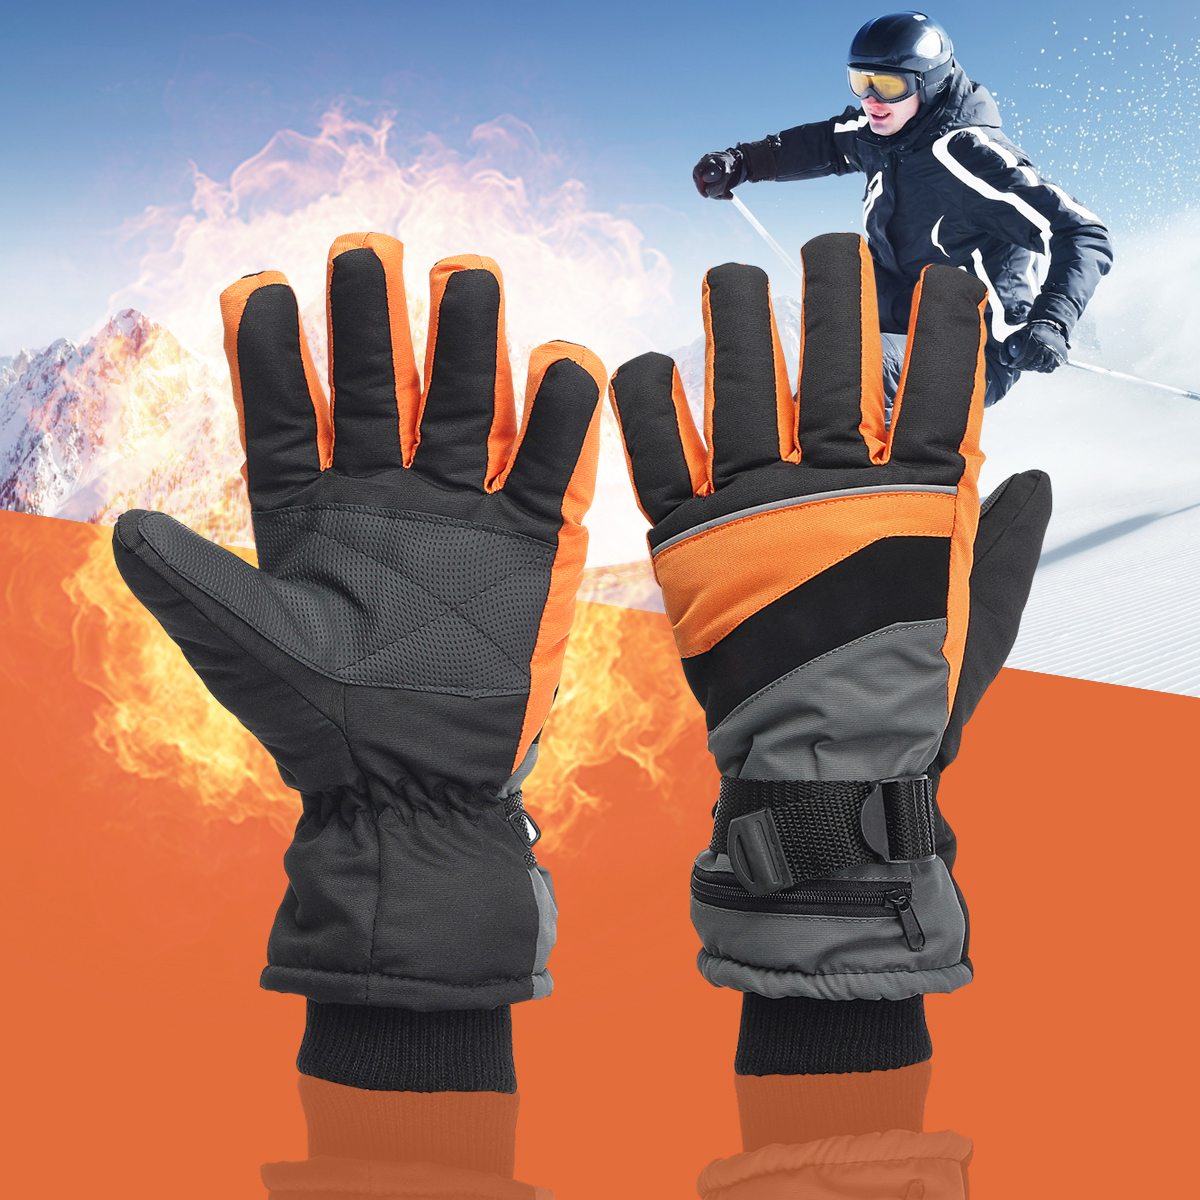 1 Pair Motorcycle Bicycle Snow Winter Outdoor Work 3.7V Electric Heated Gloves +2x2000MAh Rechargeable Battery Hands Warmer 1 pair 4000mah rechargeable battery with smart switch on off electric heated warm glove winter outdoor work ski warmer gloves